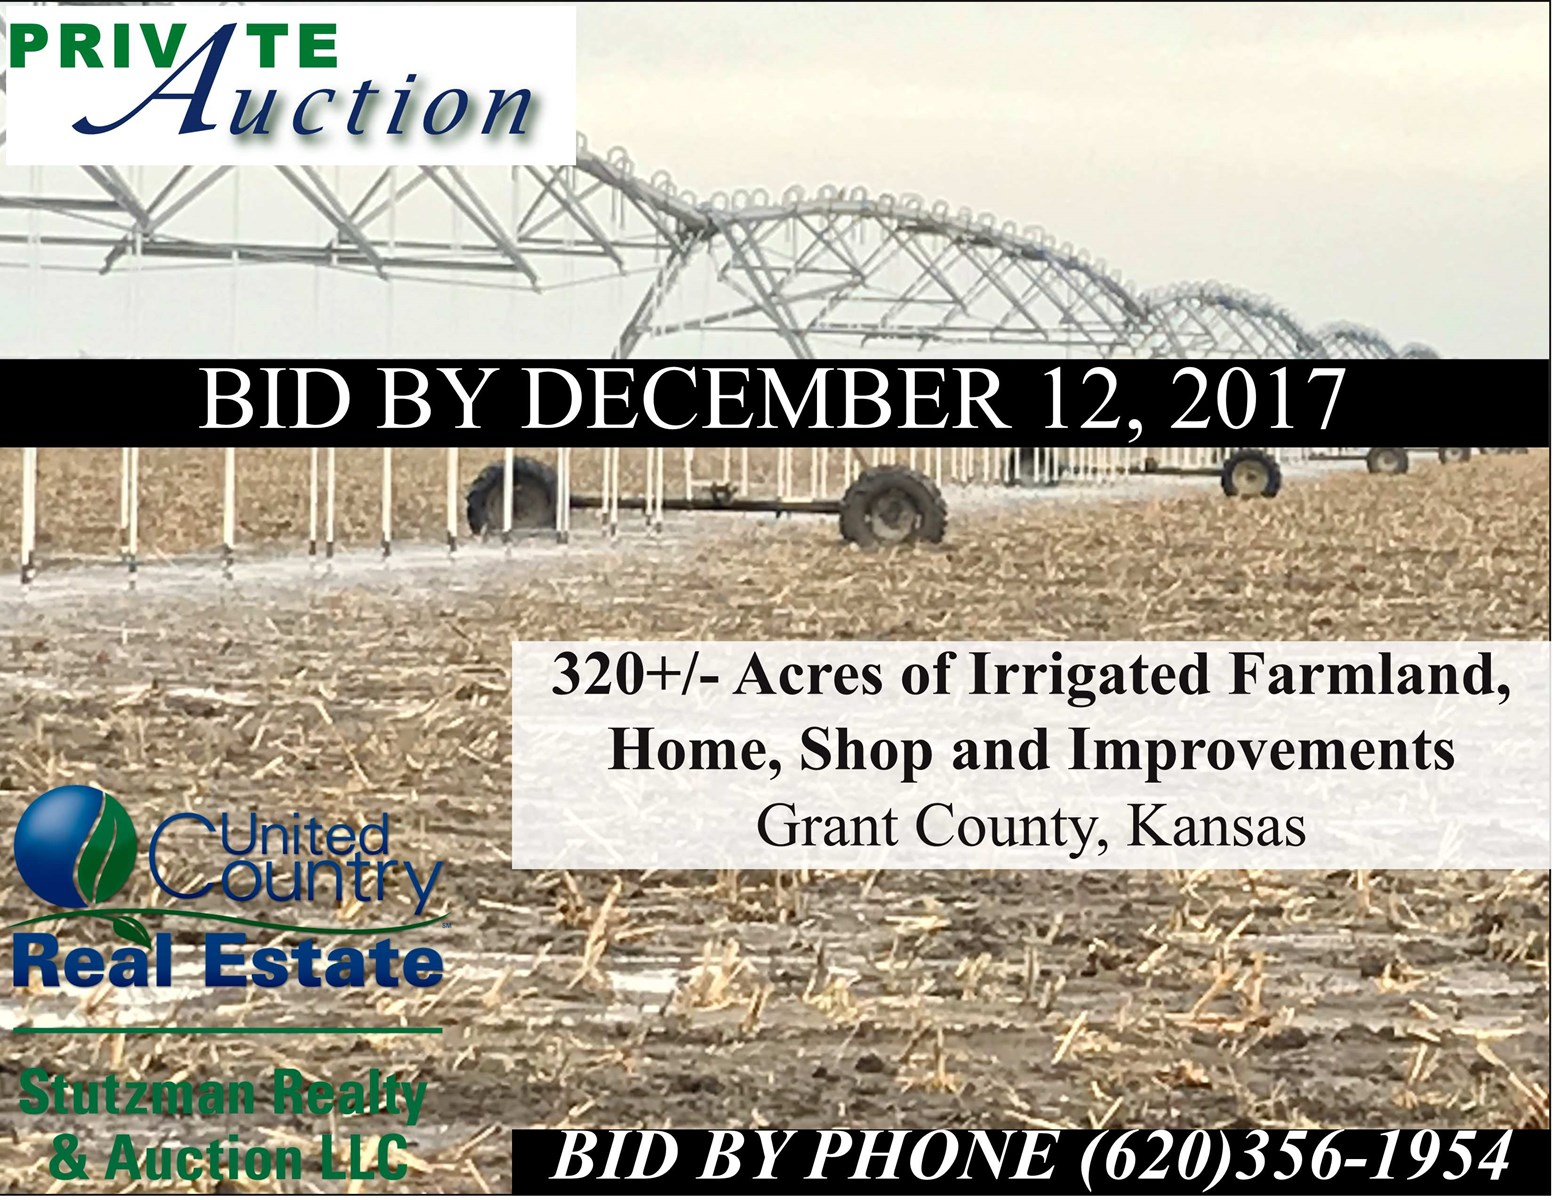 PRIVATE AUCTION - ABSOLUTE ~ NO RESERVE ~ IRRIGATED FARM